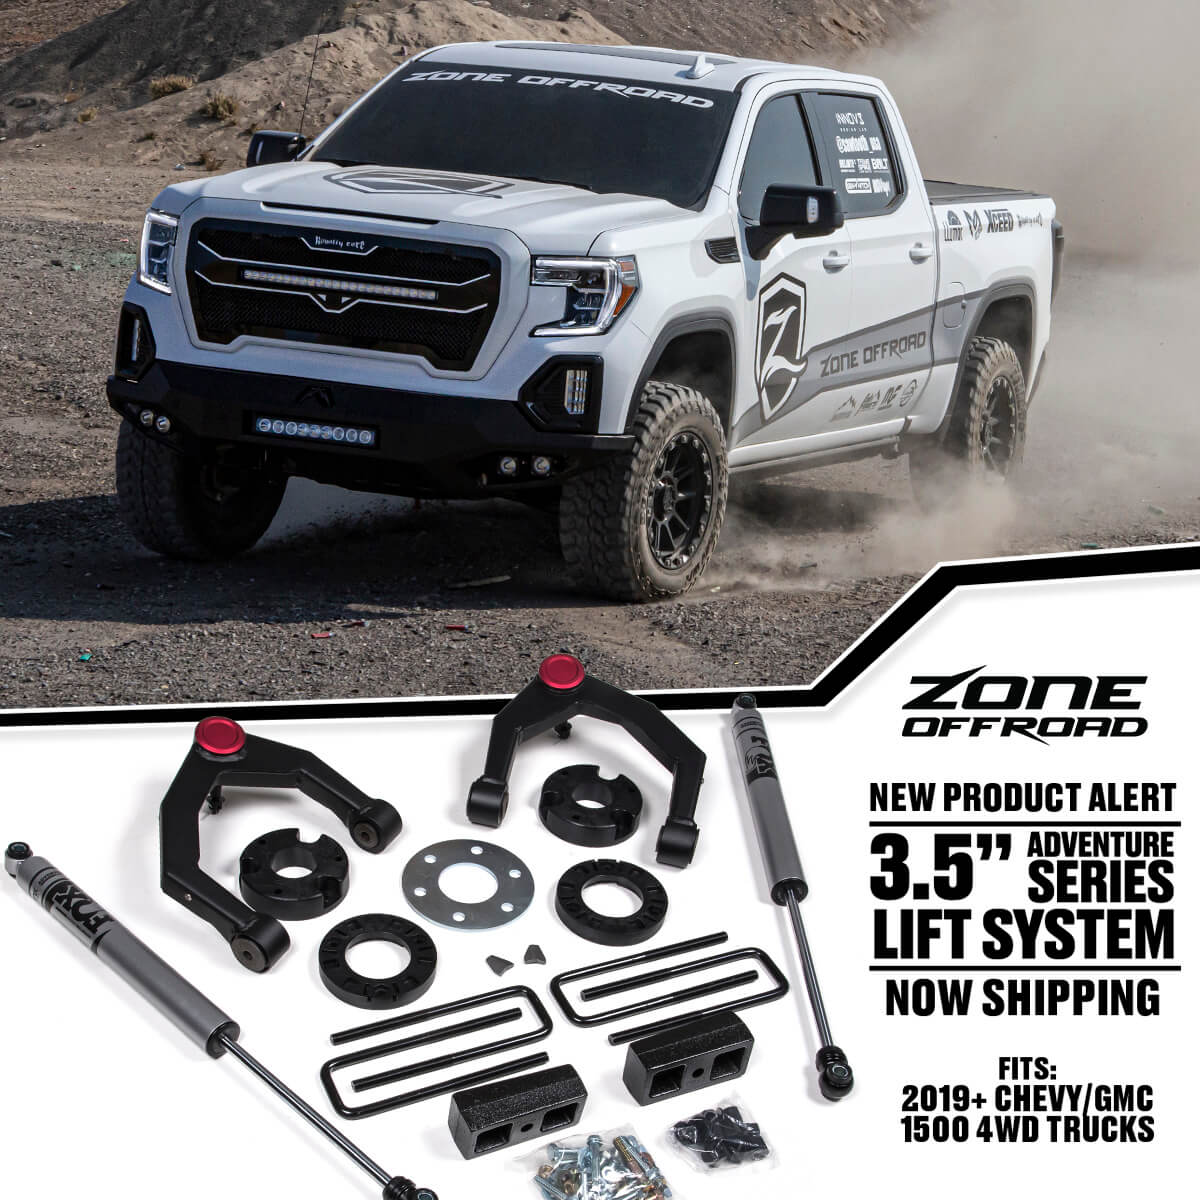 "3.5"" Adventure Series Lift System for 2019+ GM1500 Trucks from Zone Offroad"